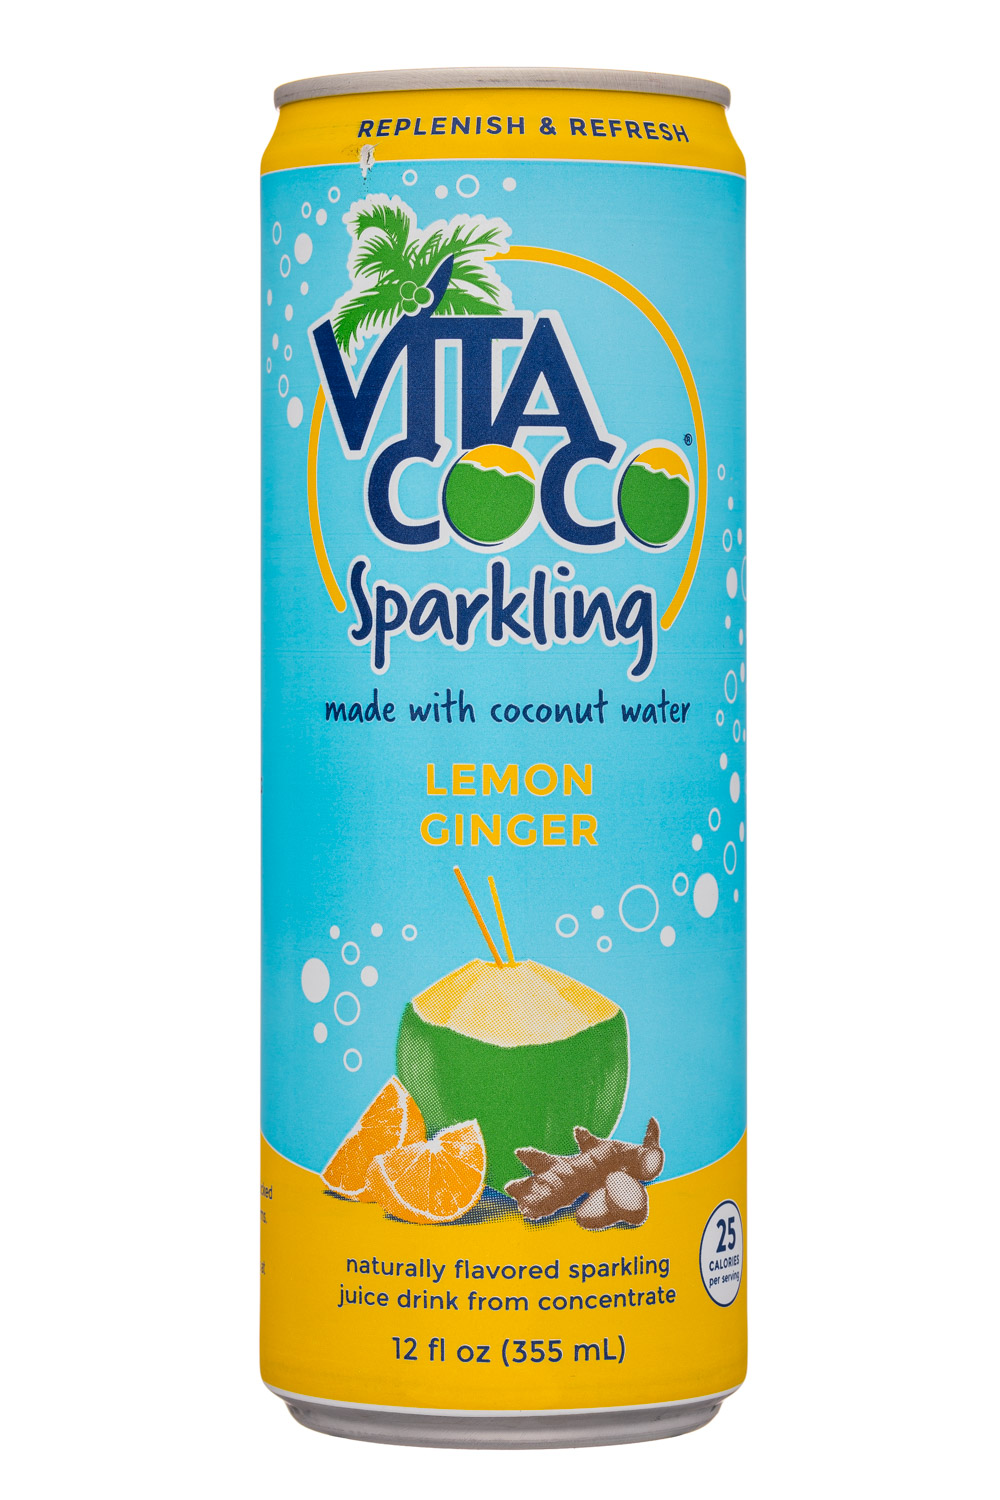 Sparkling Lemon Ginger